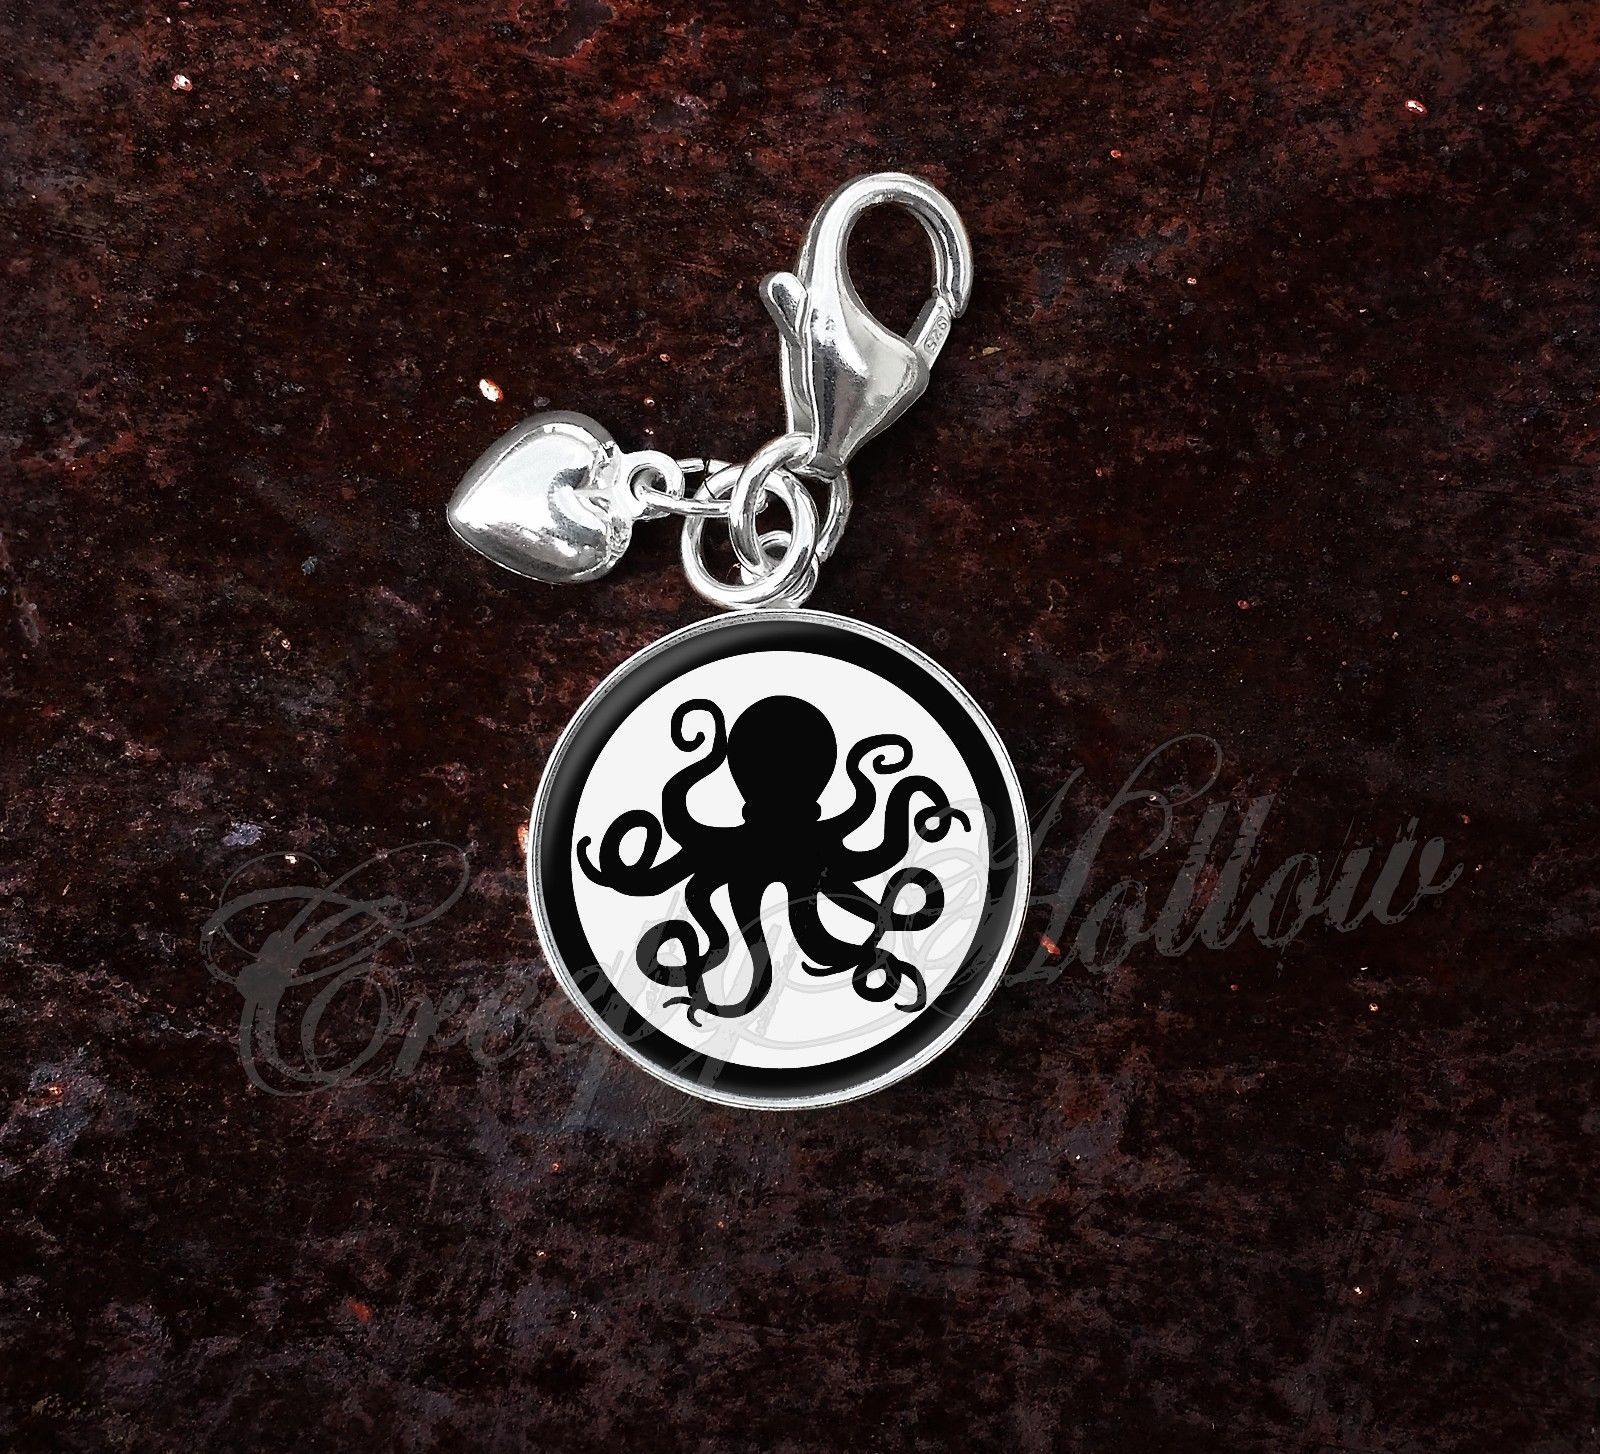 925 Sterling Silver Charm Octopus Silhouette Spy Secret Agent